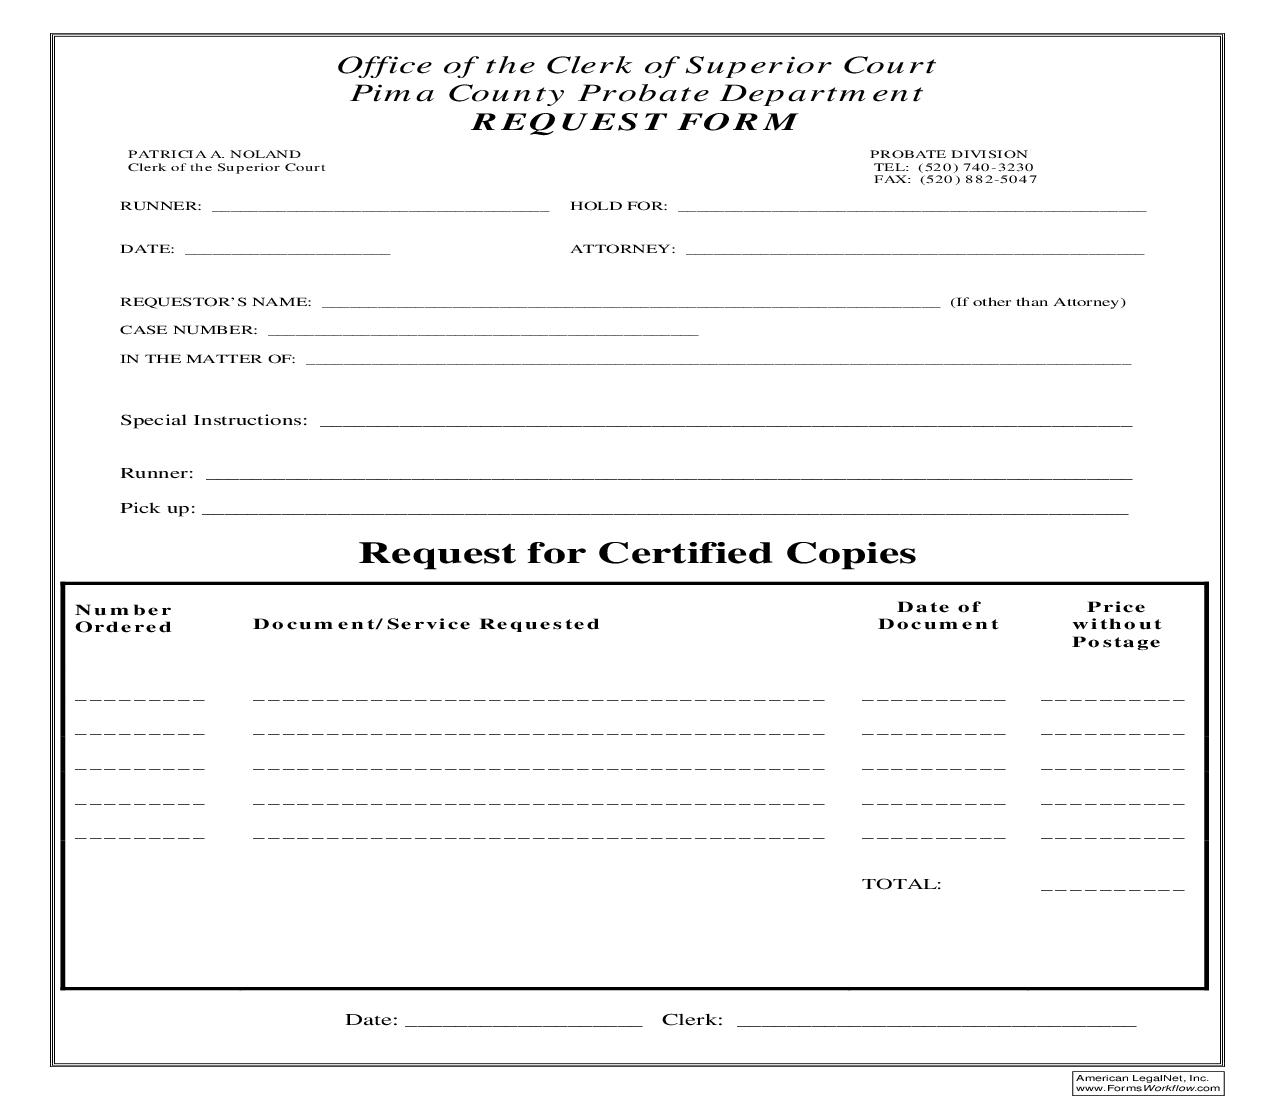 Request Form - Request For Certified Copies | Pdf Fpdf Doc Docx | Arizona